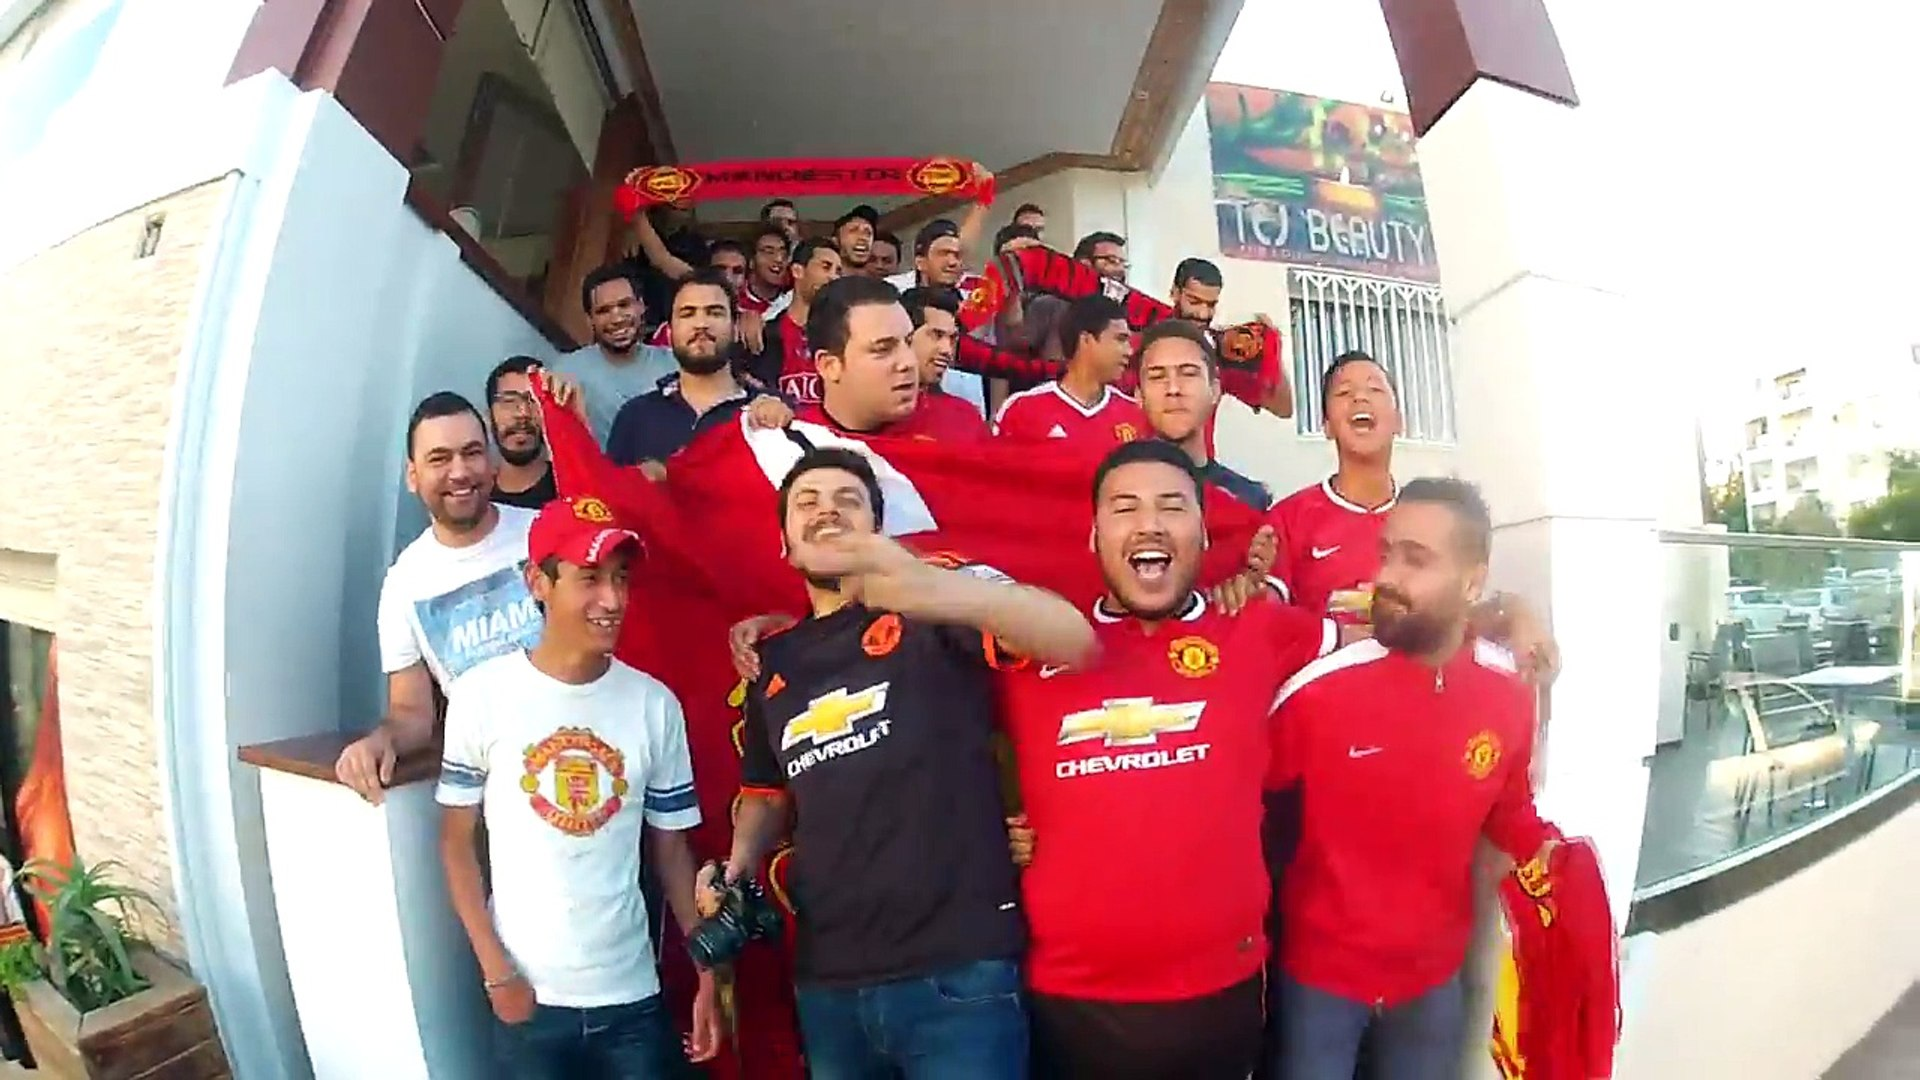 Manchester United Fans In Tunisia Facup2016 (Manchester United Vs Crystal Palace )